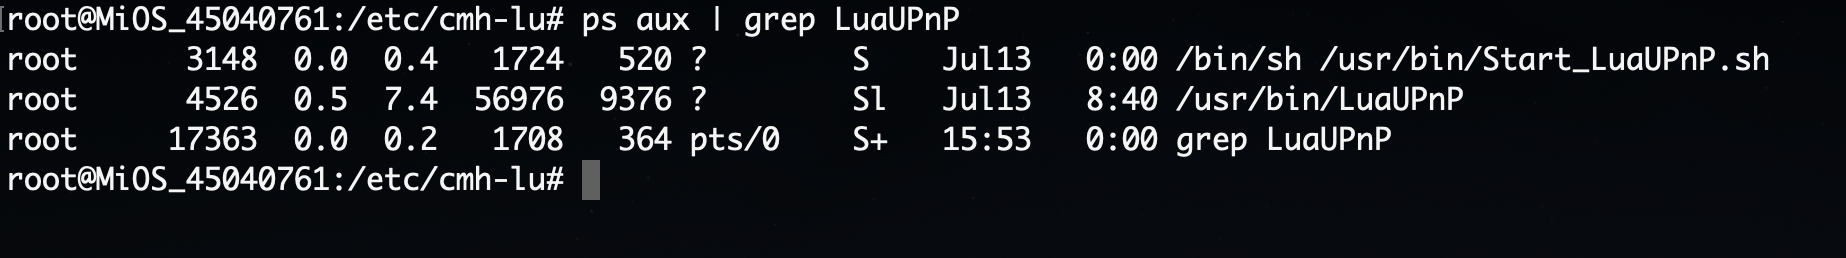 luaupnp-runs-as-root.png